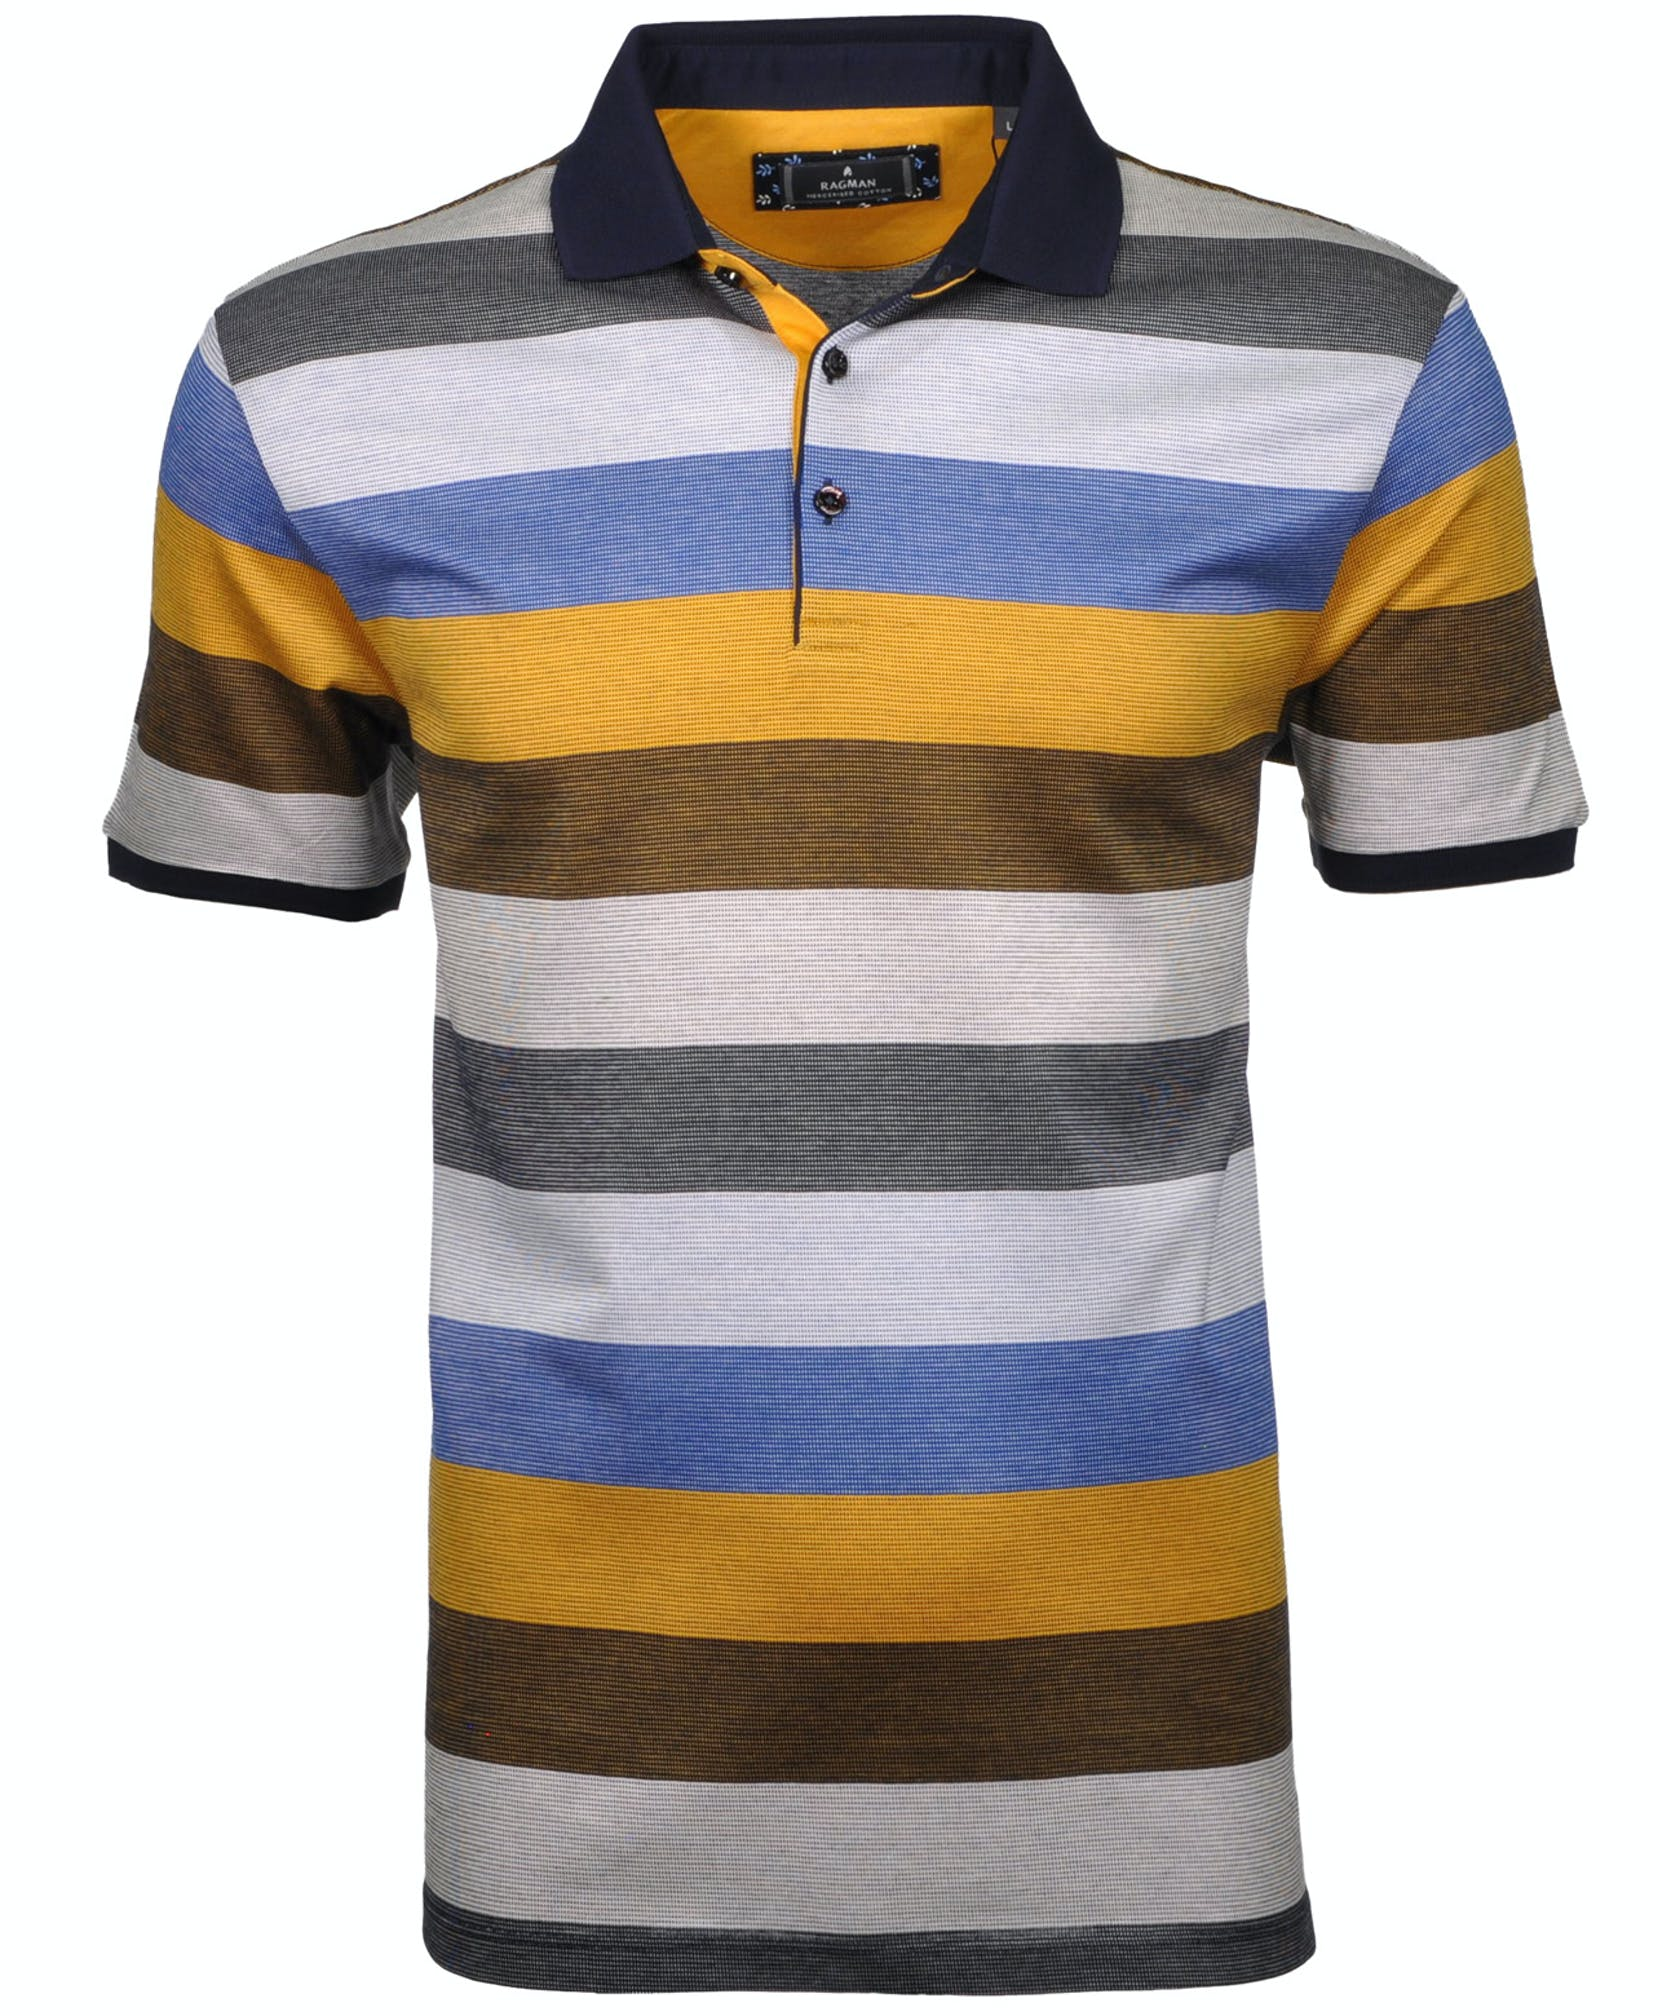 RAGMAN Polo gestreift, mercerisiert